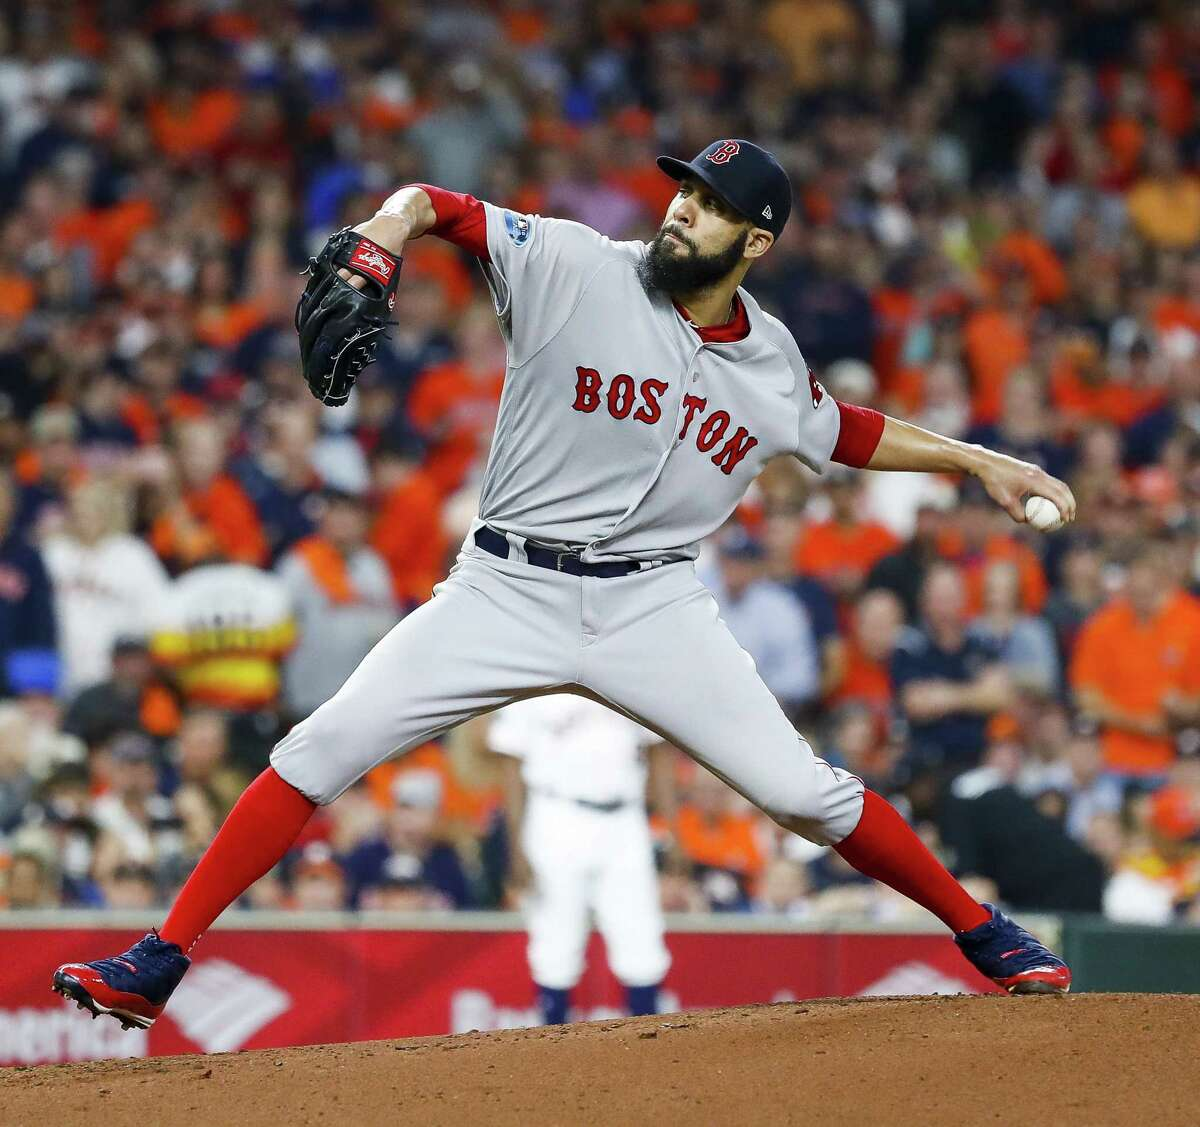 Red Sox starting pitcher David Price pitches during the first inning of Game 5 on Thursday.